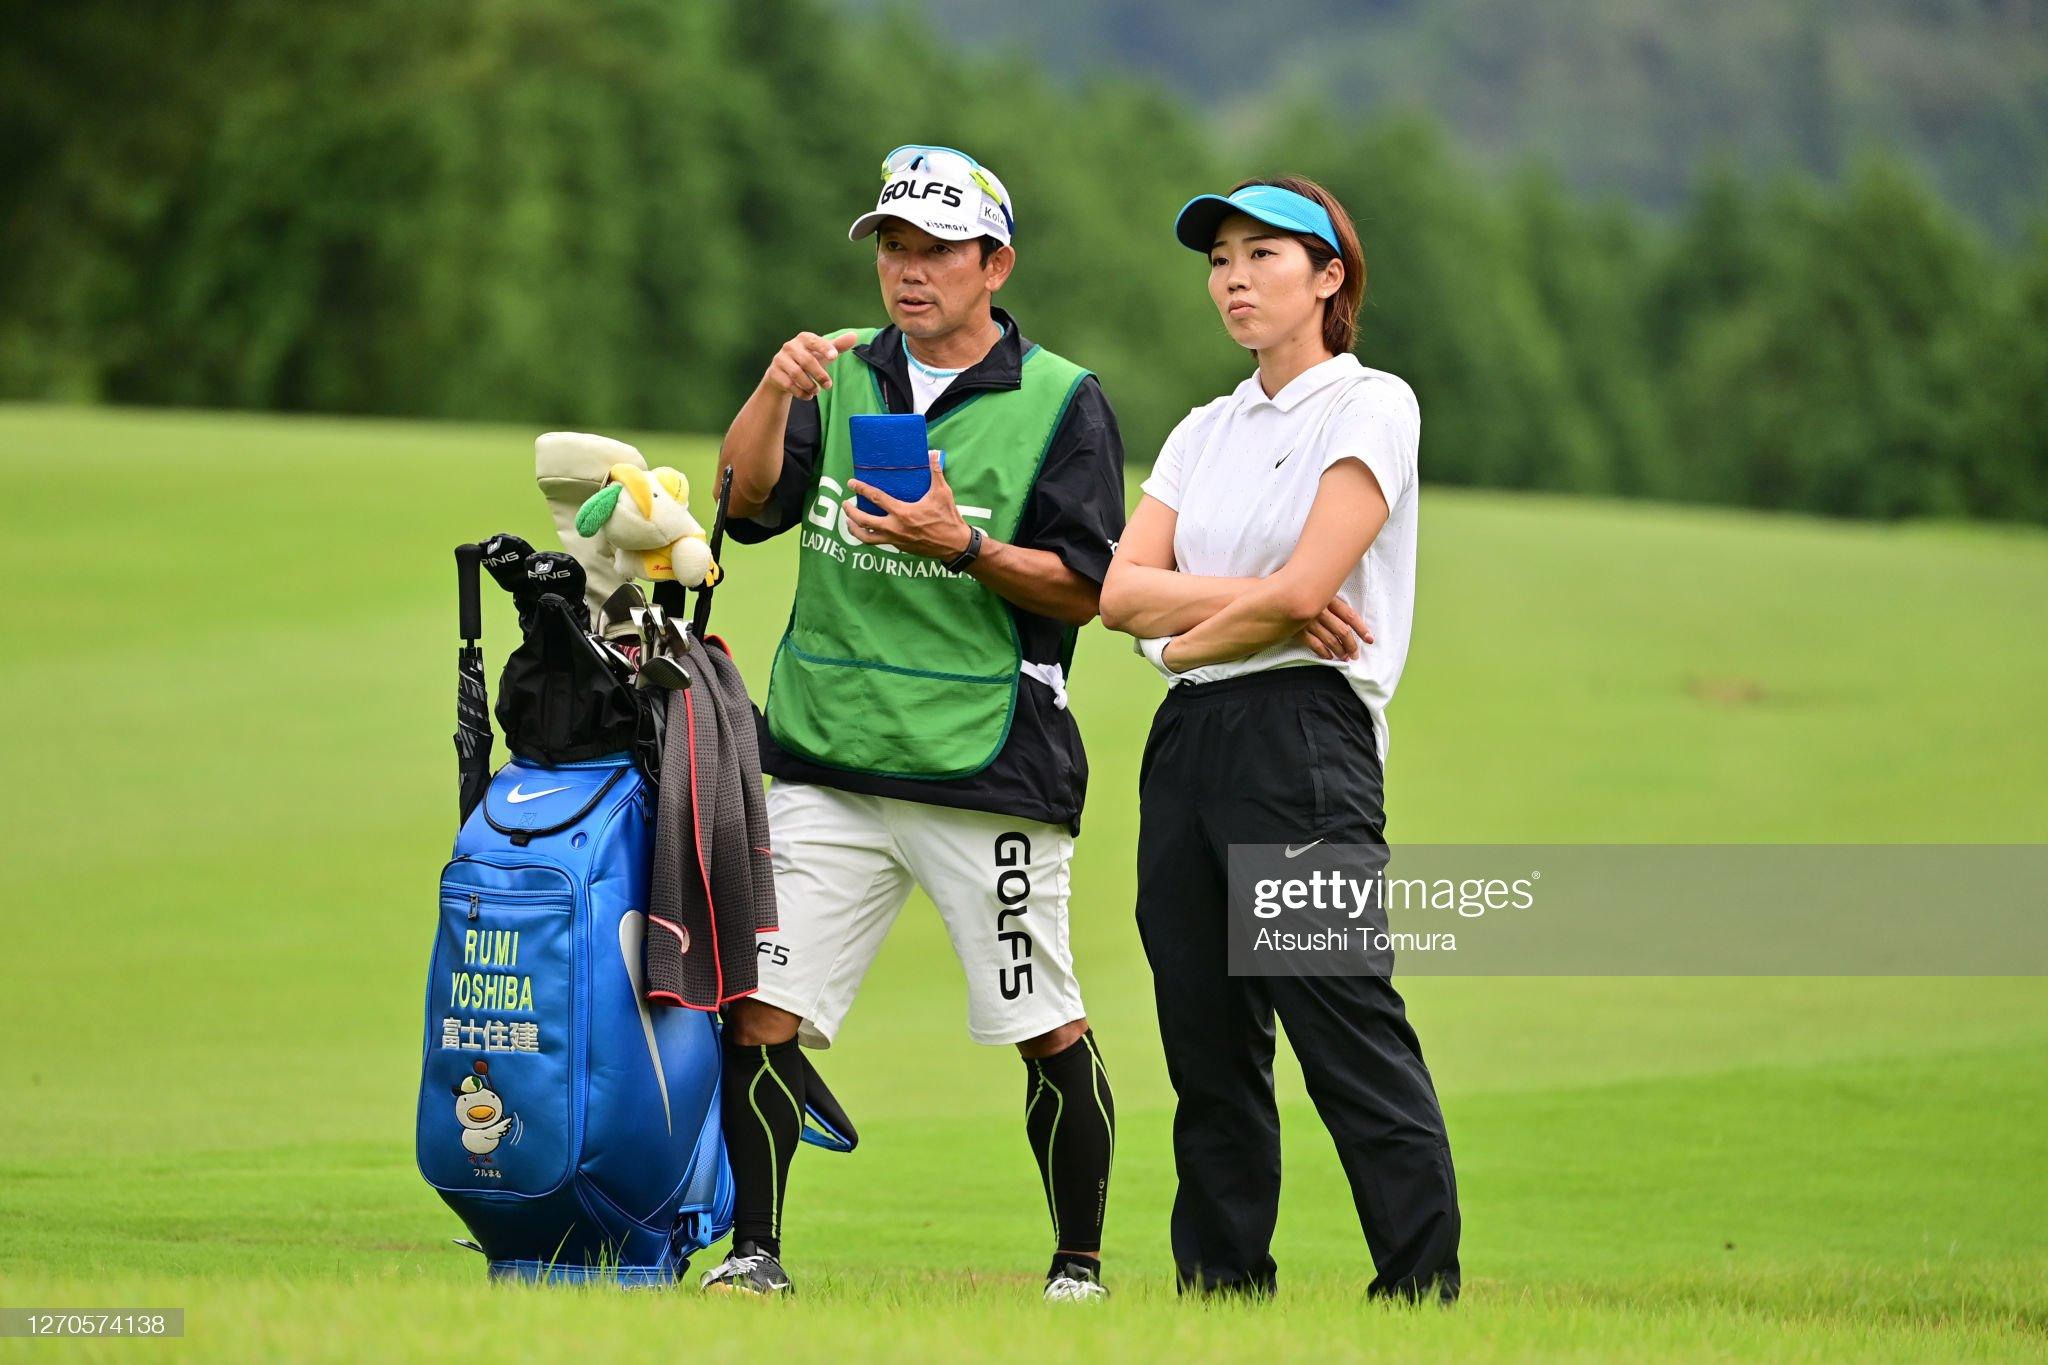 https://media.gettyimages.com/photos/rumi-yoshiba-of-japan-discusses-with-her-caddie-before-her-second-on-picture-id1270574138?s=2048x2048